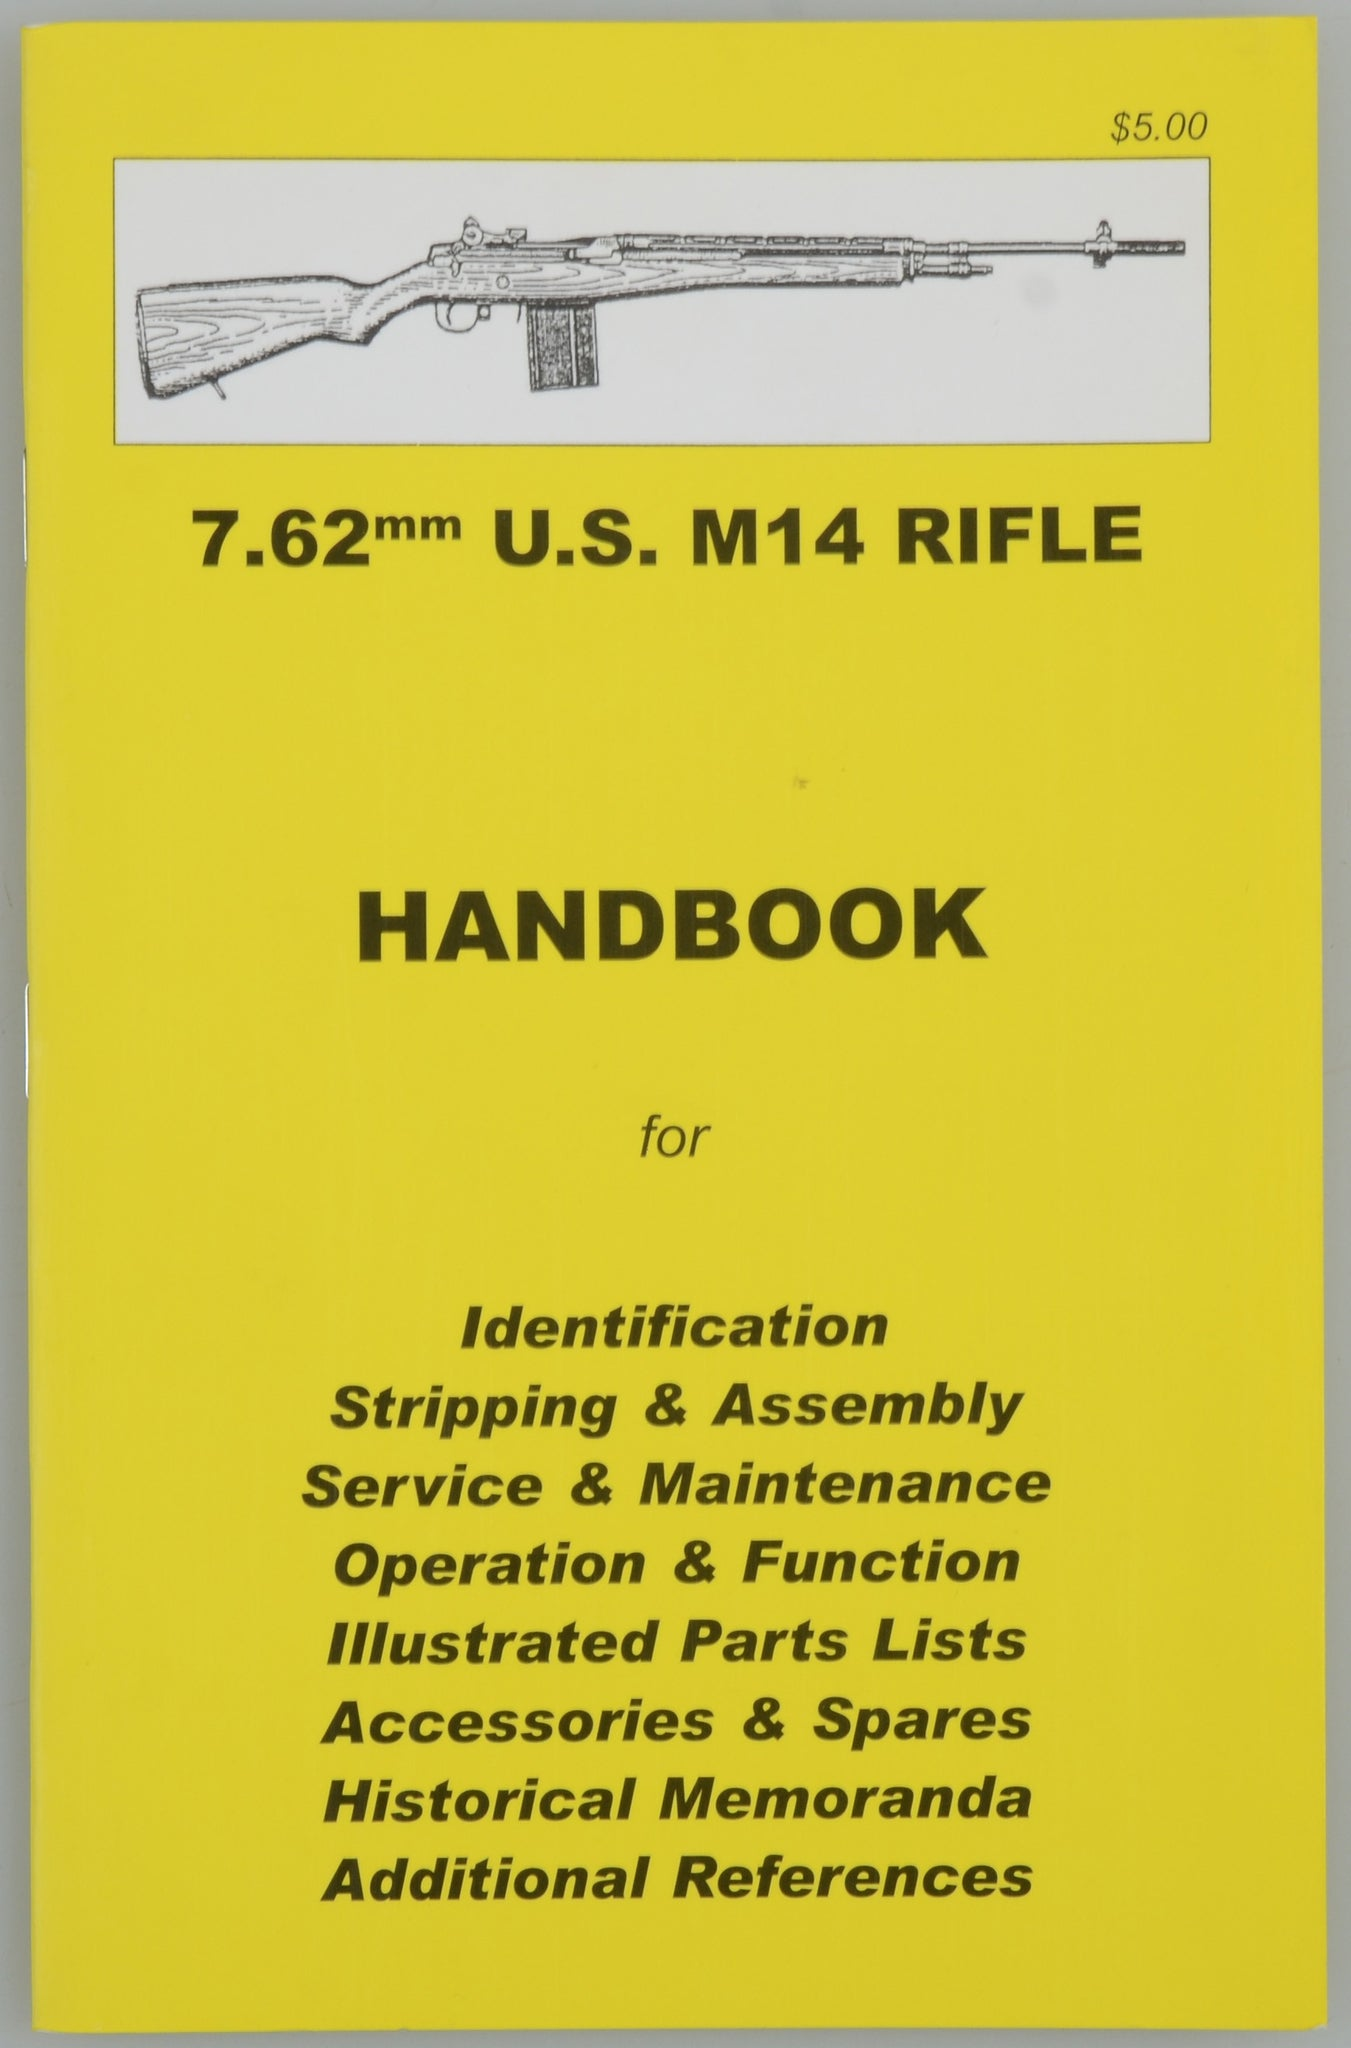 7.62mm U.S. M14 RIFLE HANDBOOK